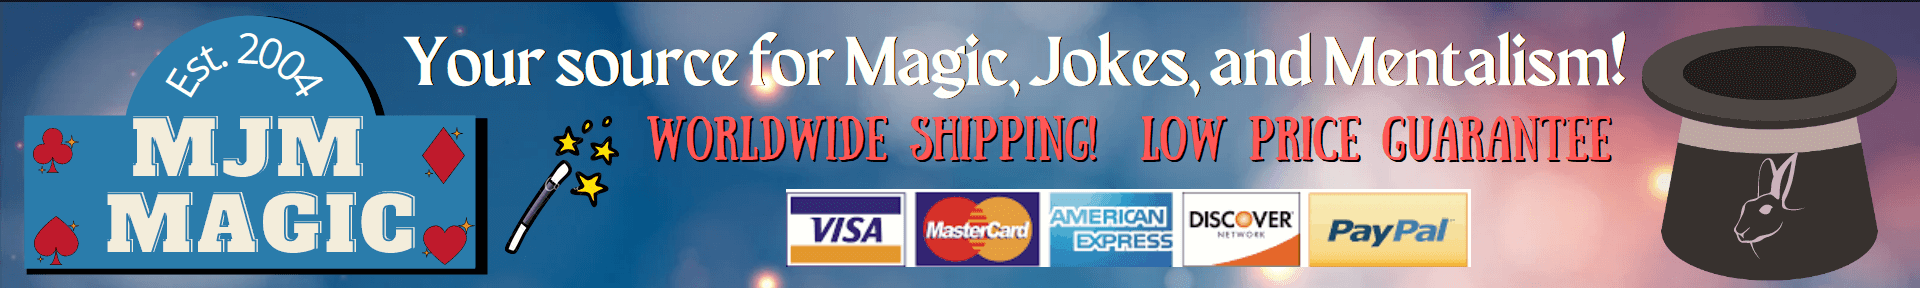 MJM Magic - Magic for Magicians, Jokesters, and Mentalists